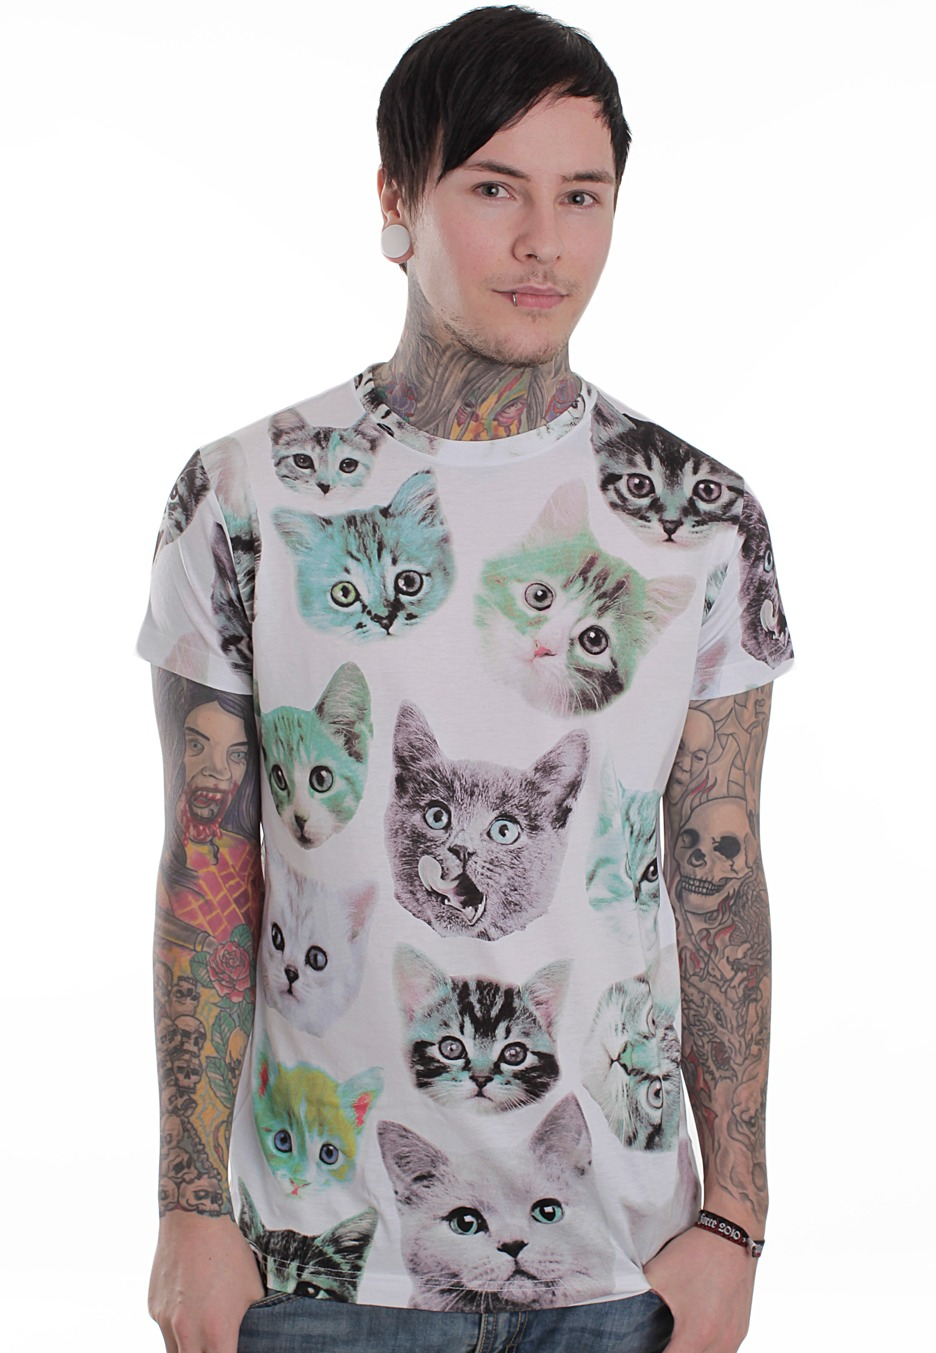 Drop Dead - Have You Seen My Kitty White - T-Shirt - Streetwear Online Shop - Impericon.com Europe